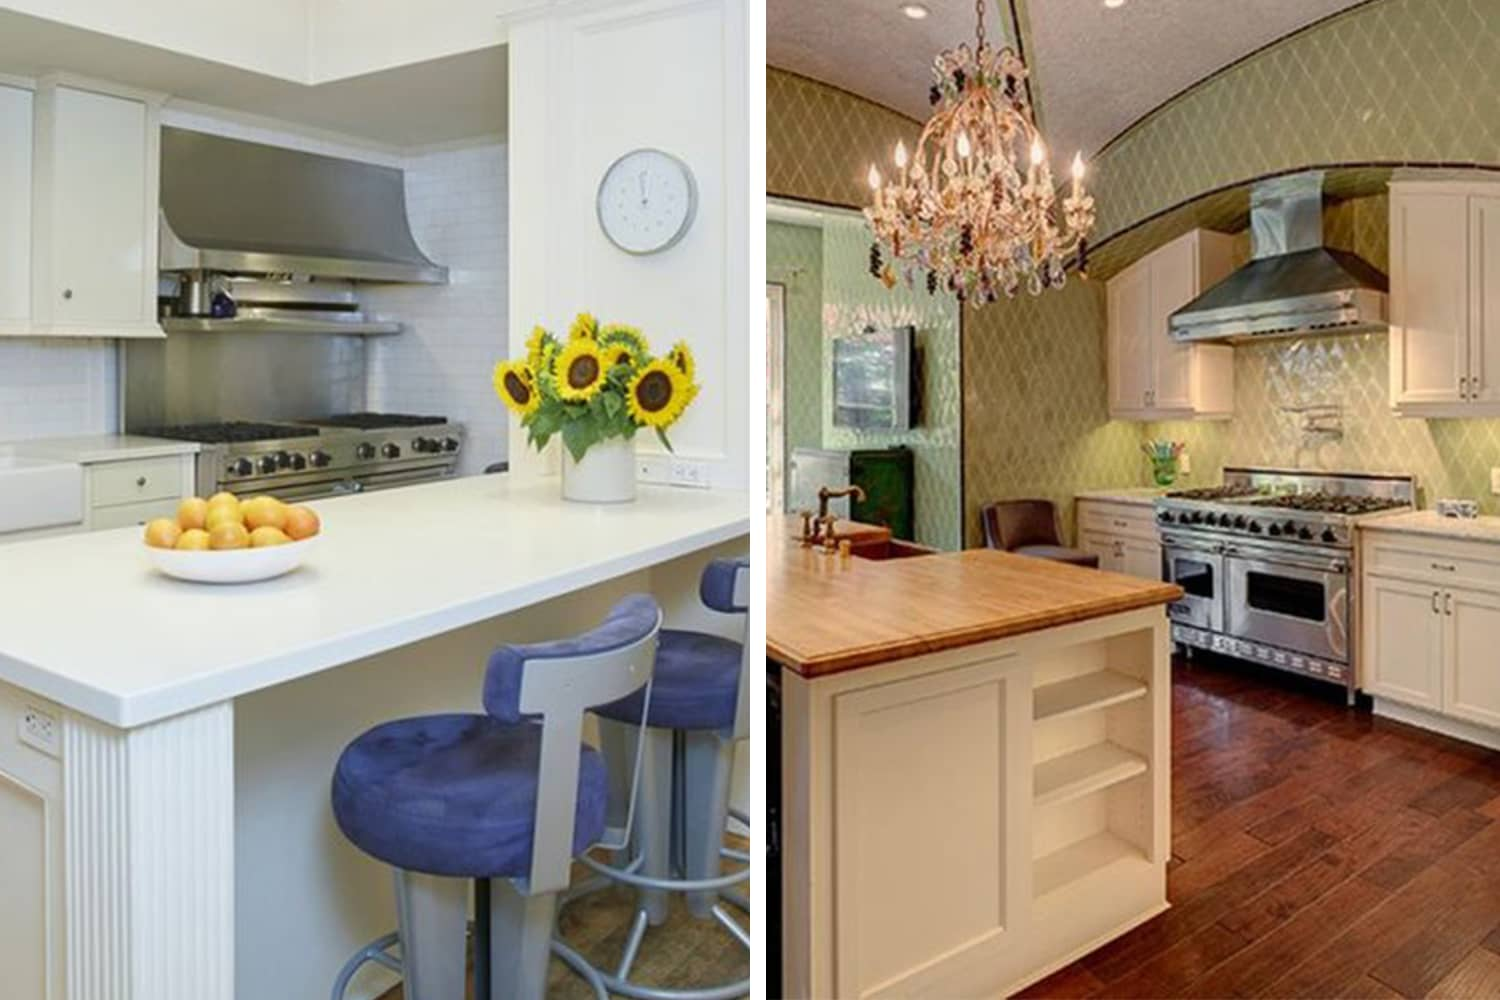 This Is What Kitchens Look Like in Homes That Cost $10 Million